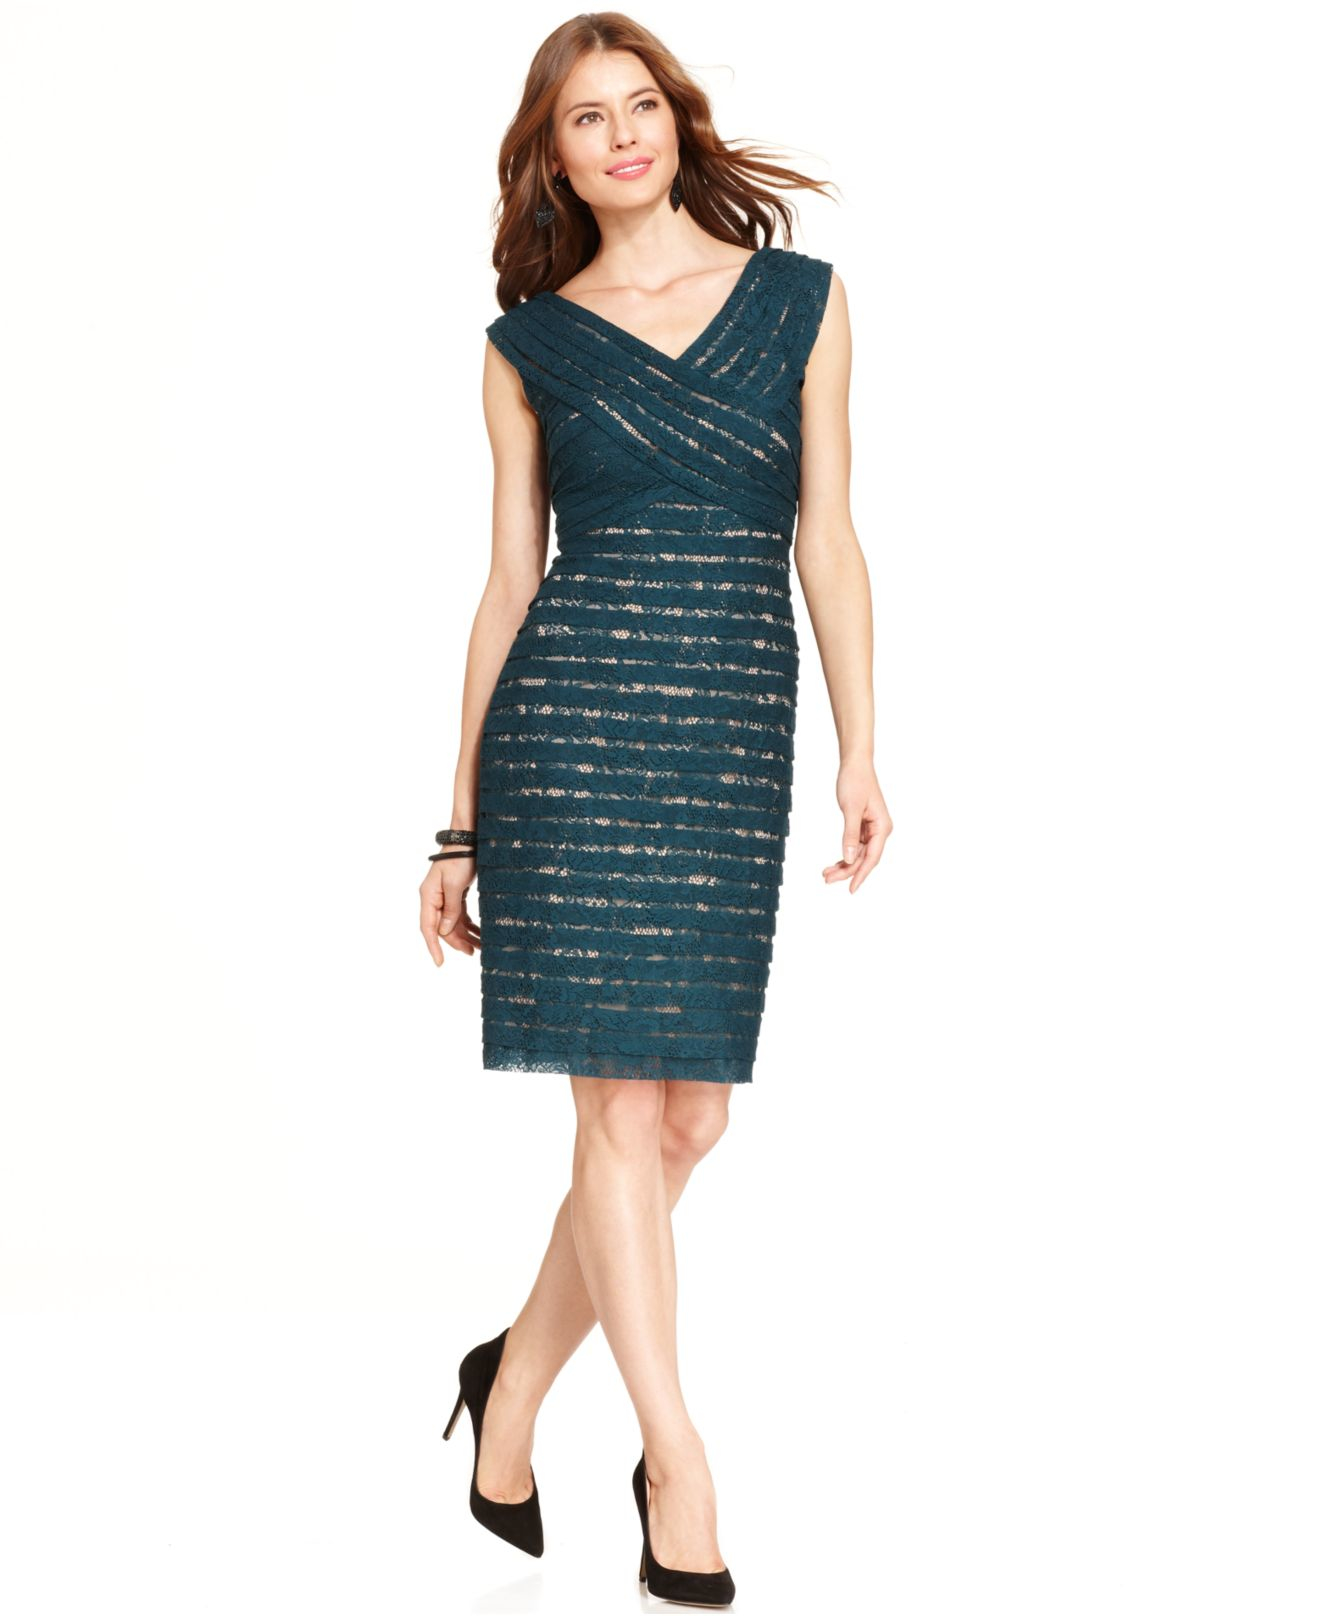 e57ef1472aa Gallery. Previously sold at: Macy's · Women's Adrianna Papell Lace Dress